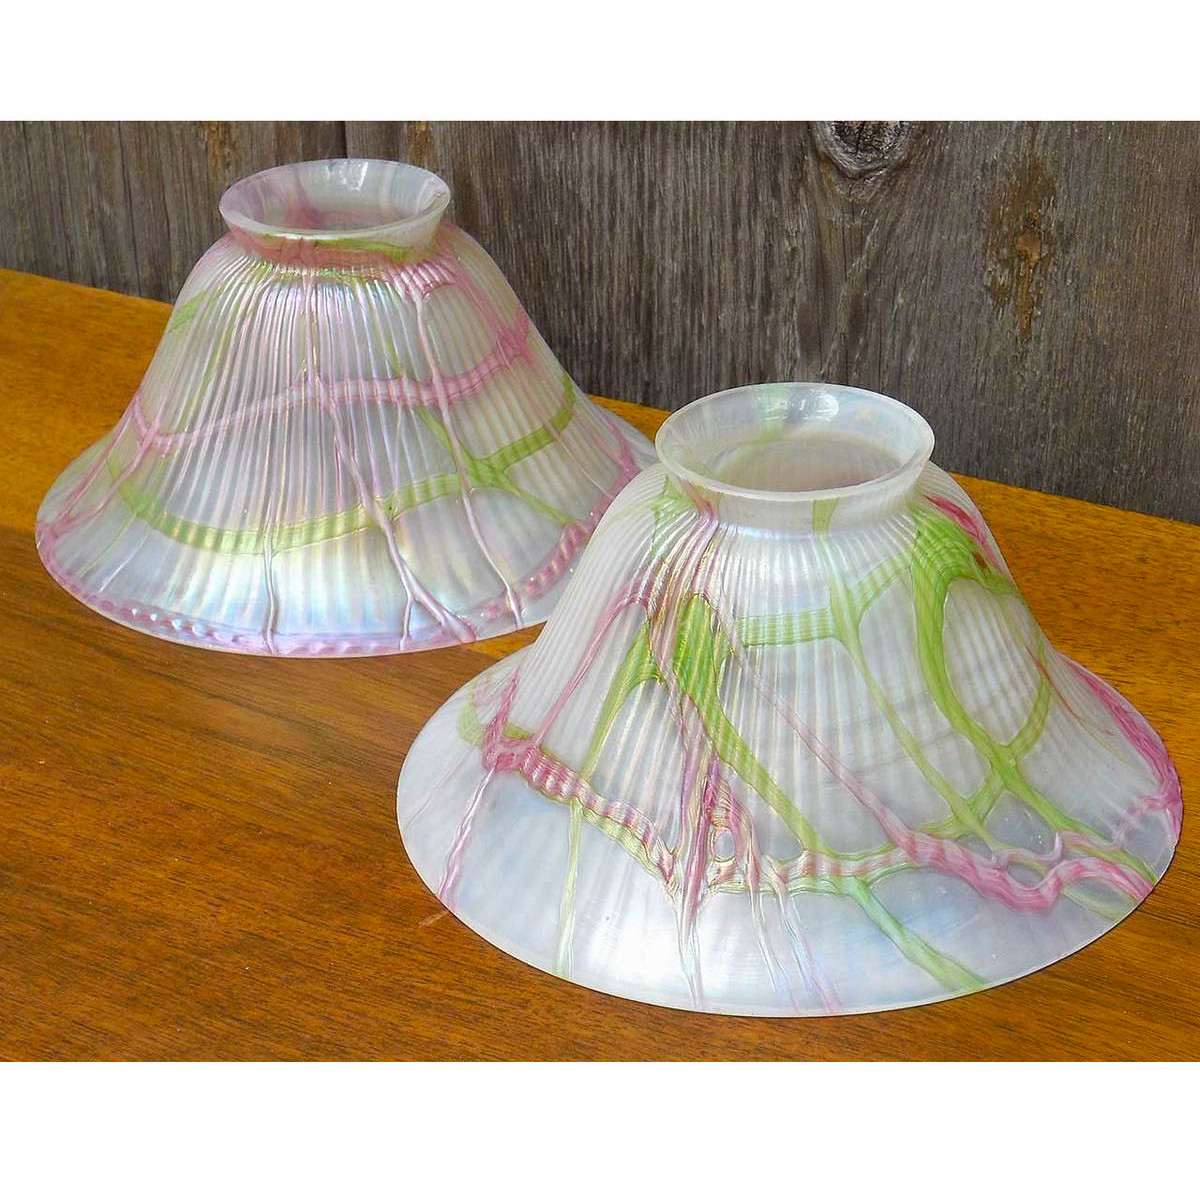 L14248 - Pair of Antique Loetz Art Glass Shades